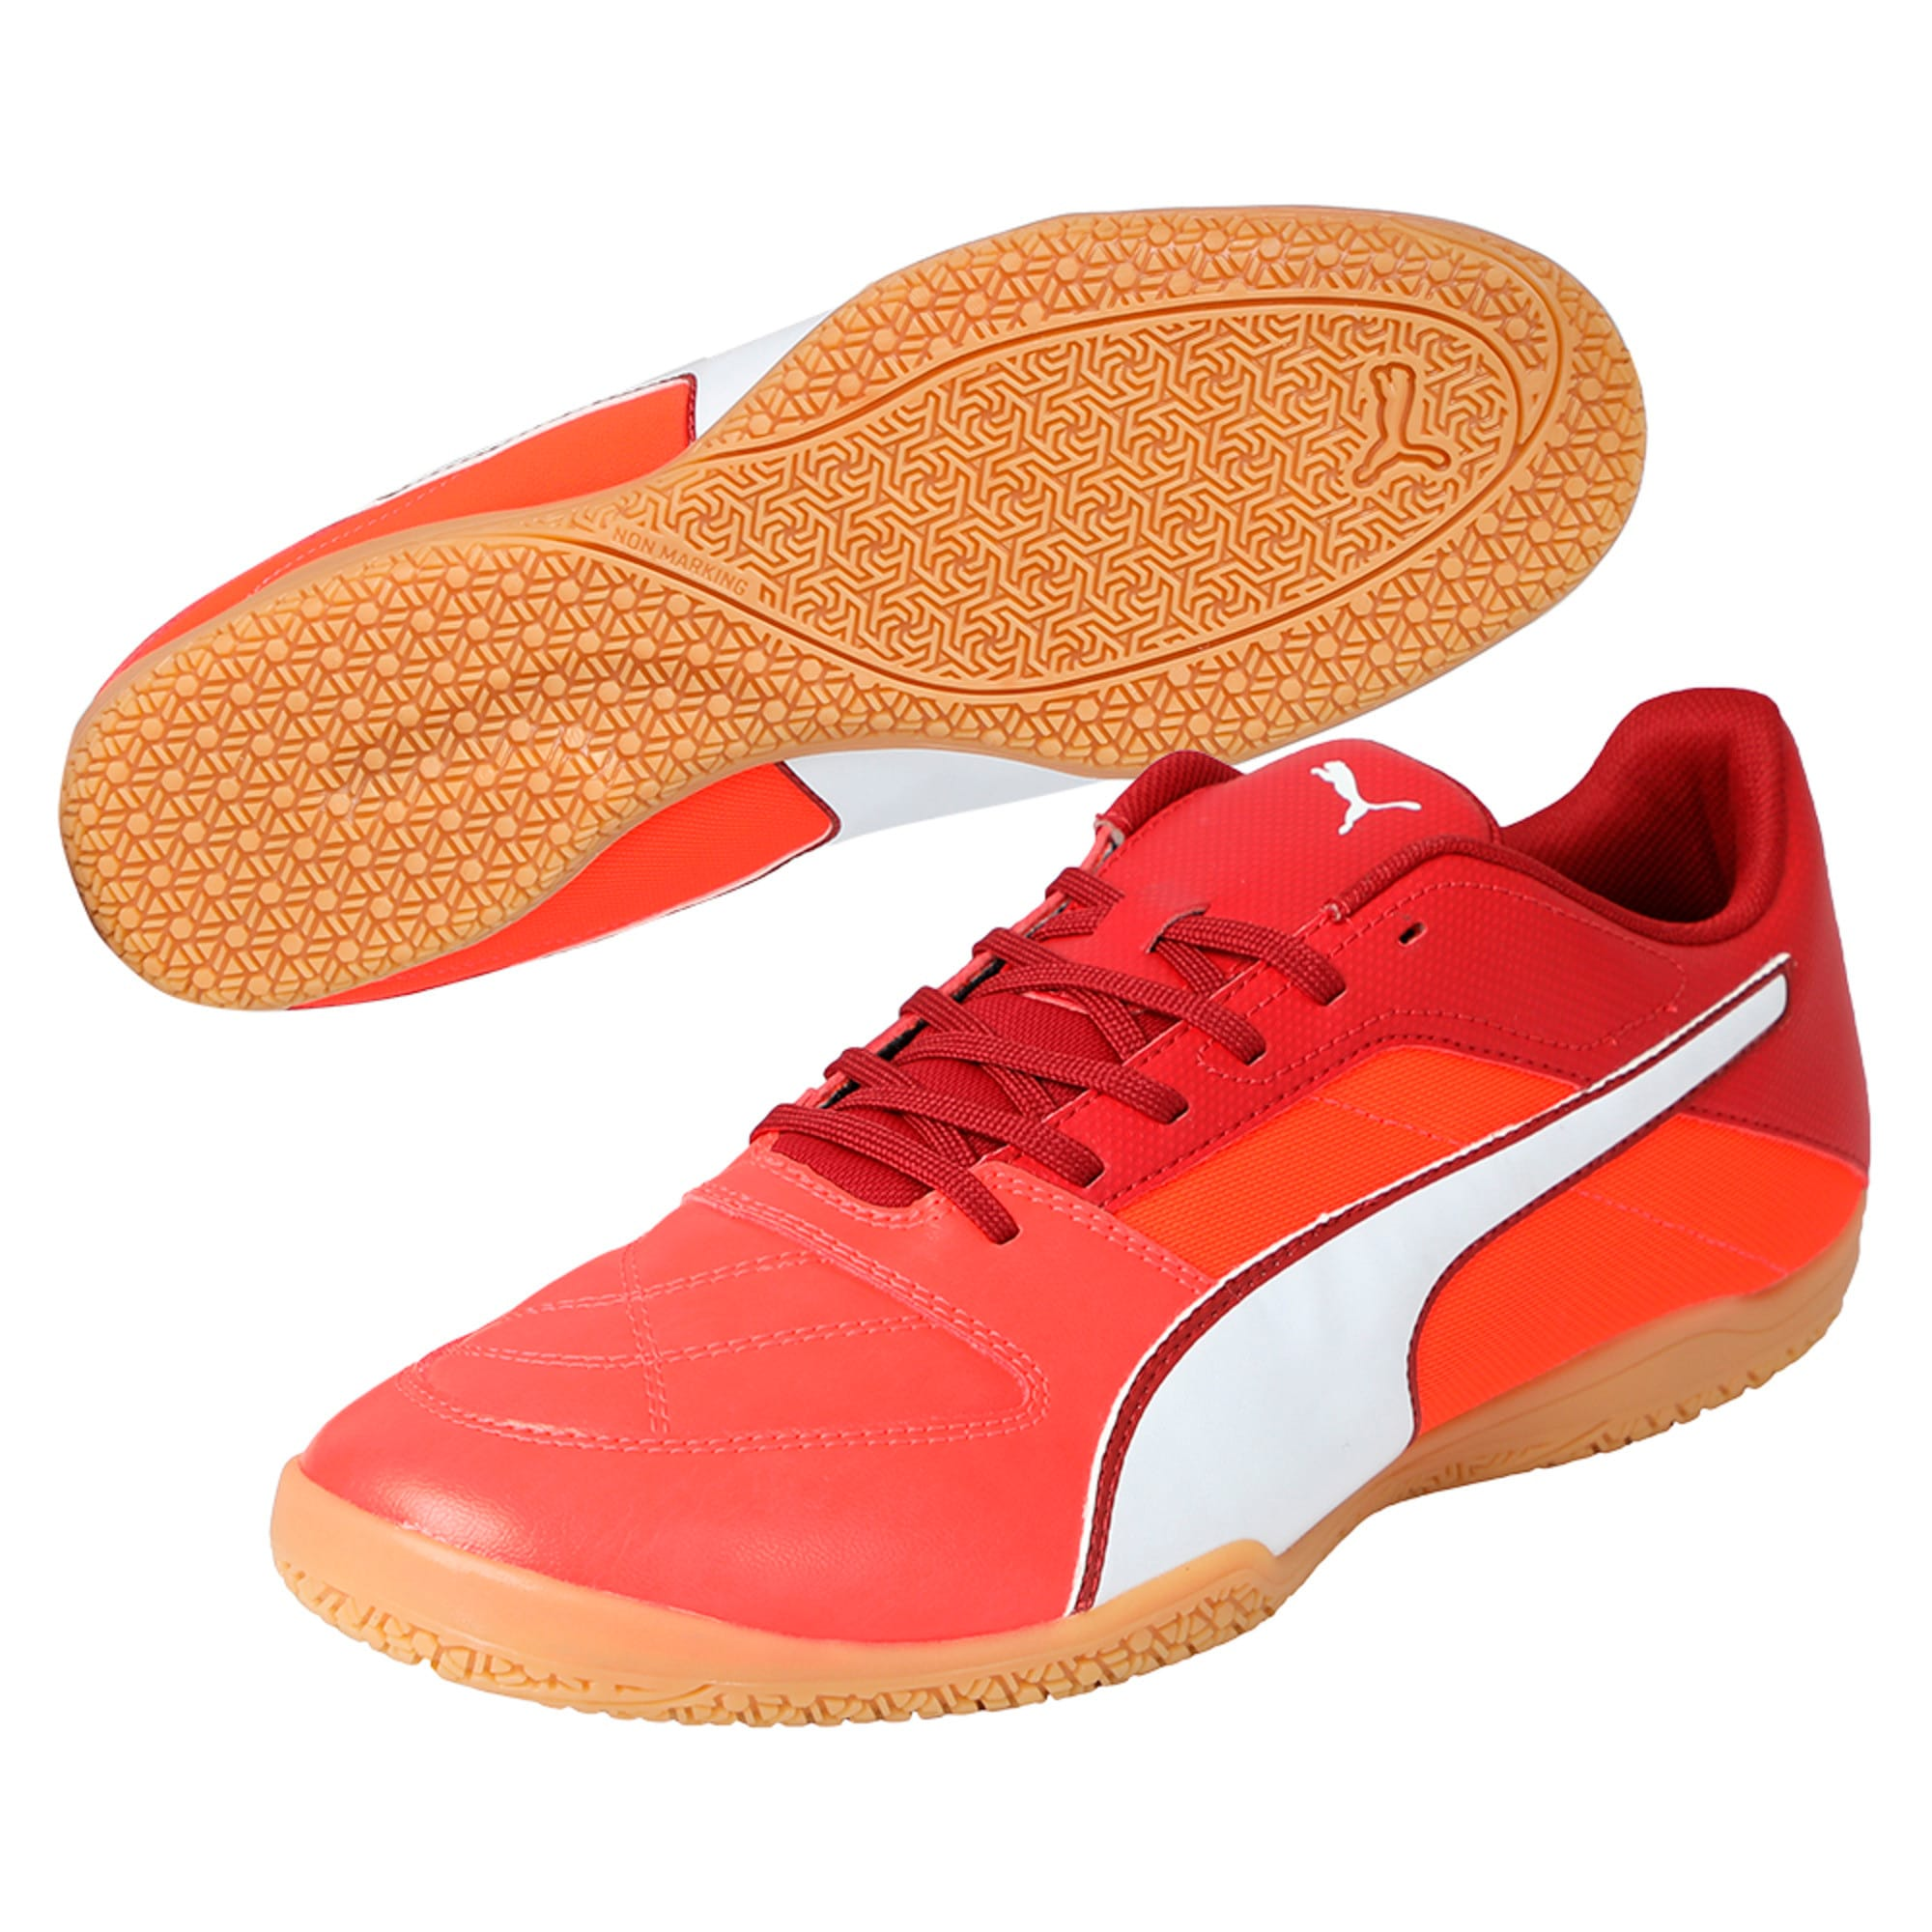 Thumbnail 2 of Gavetto II Men's Futsal Shoes, Red-White-Red Dahlia, medium-IND